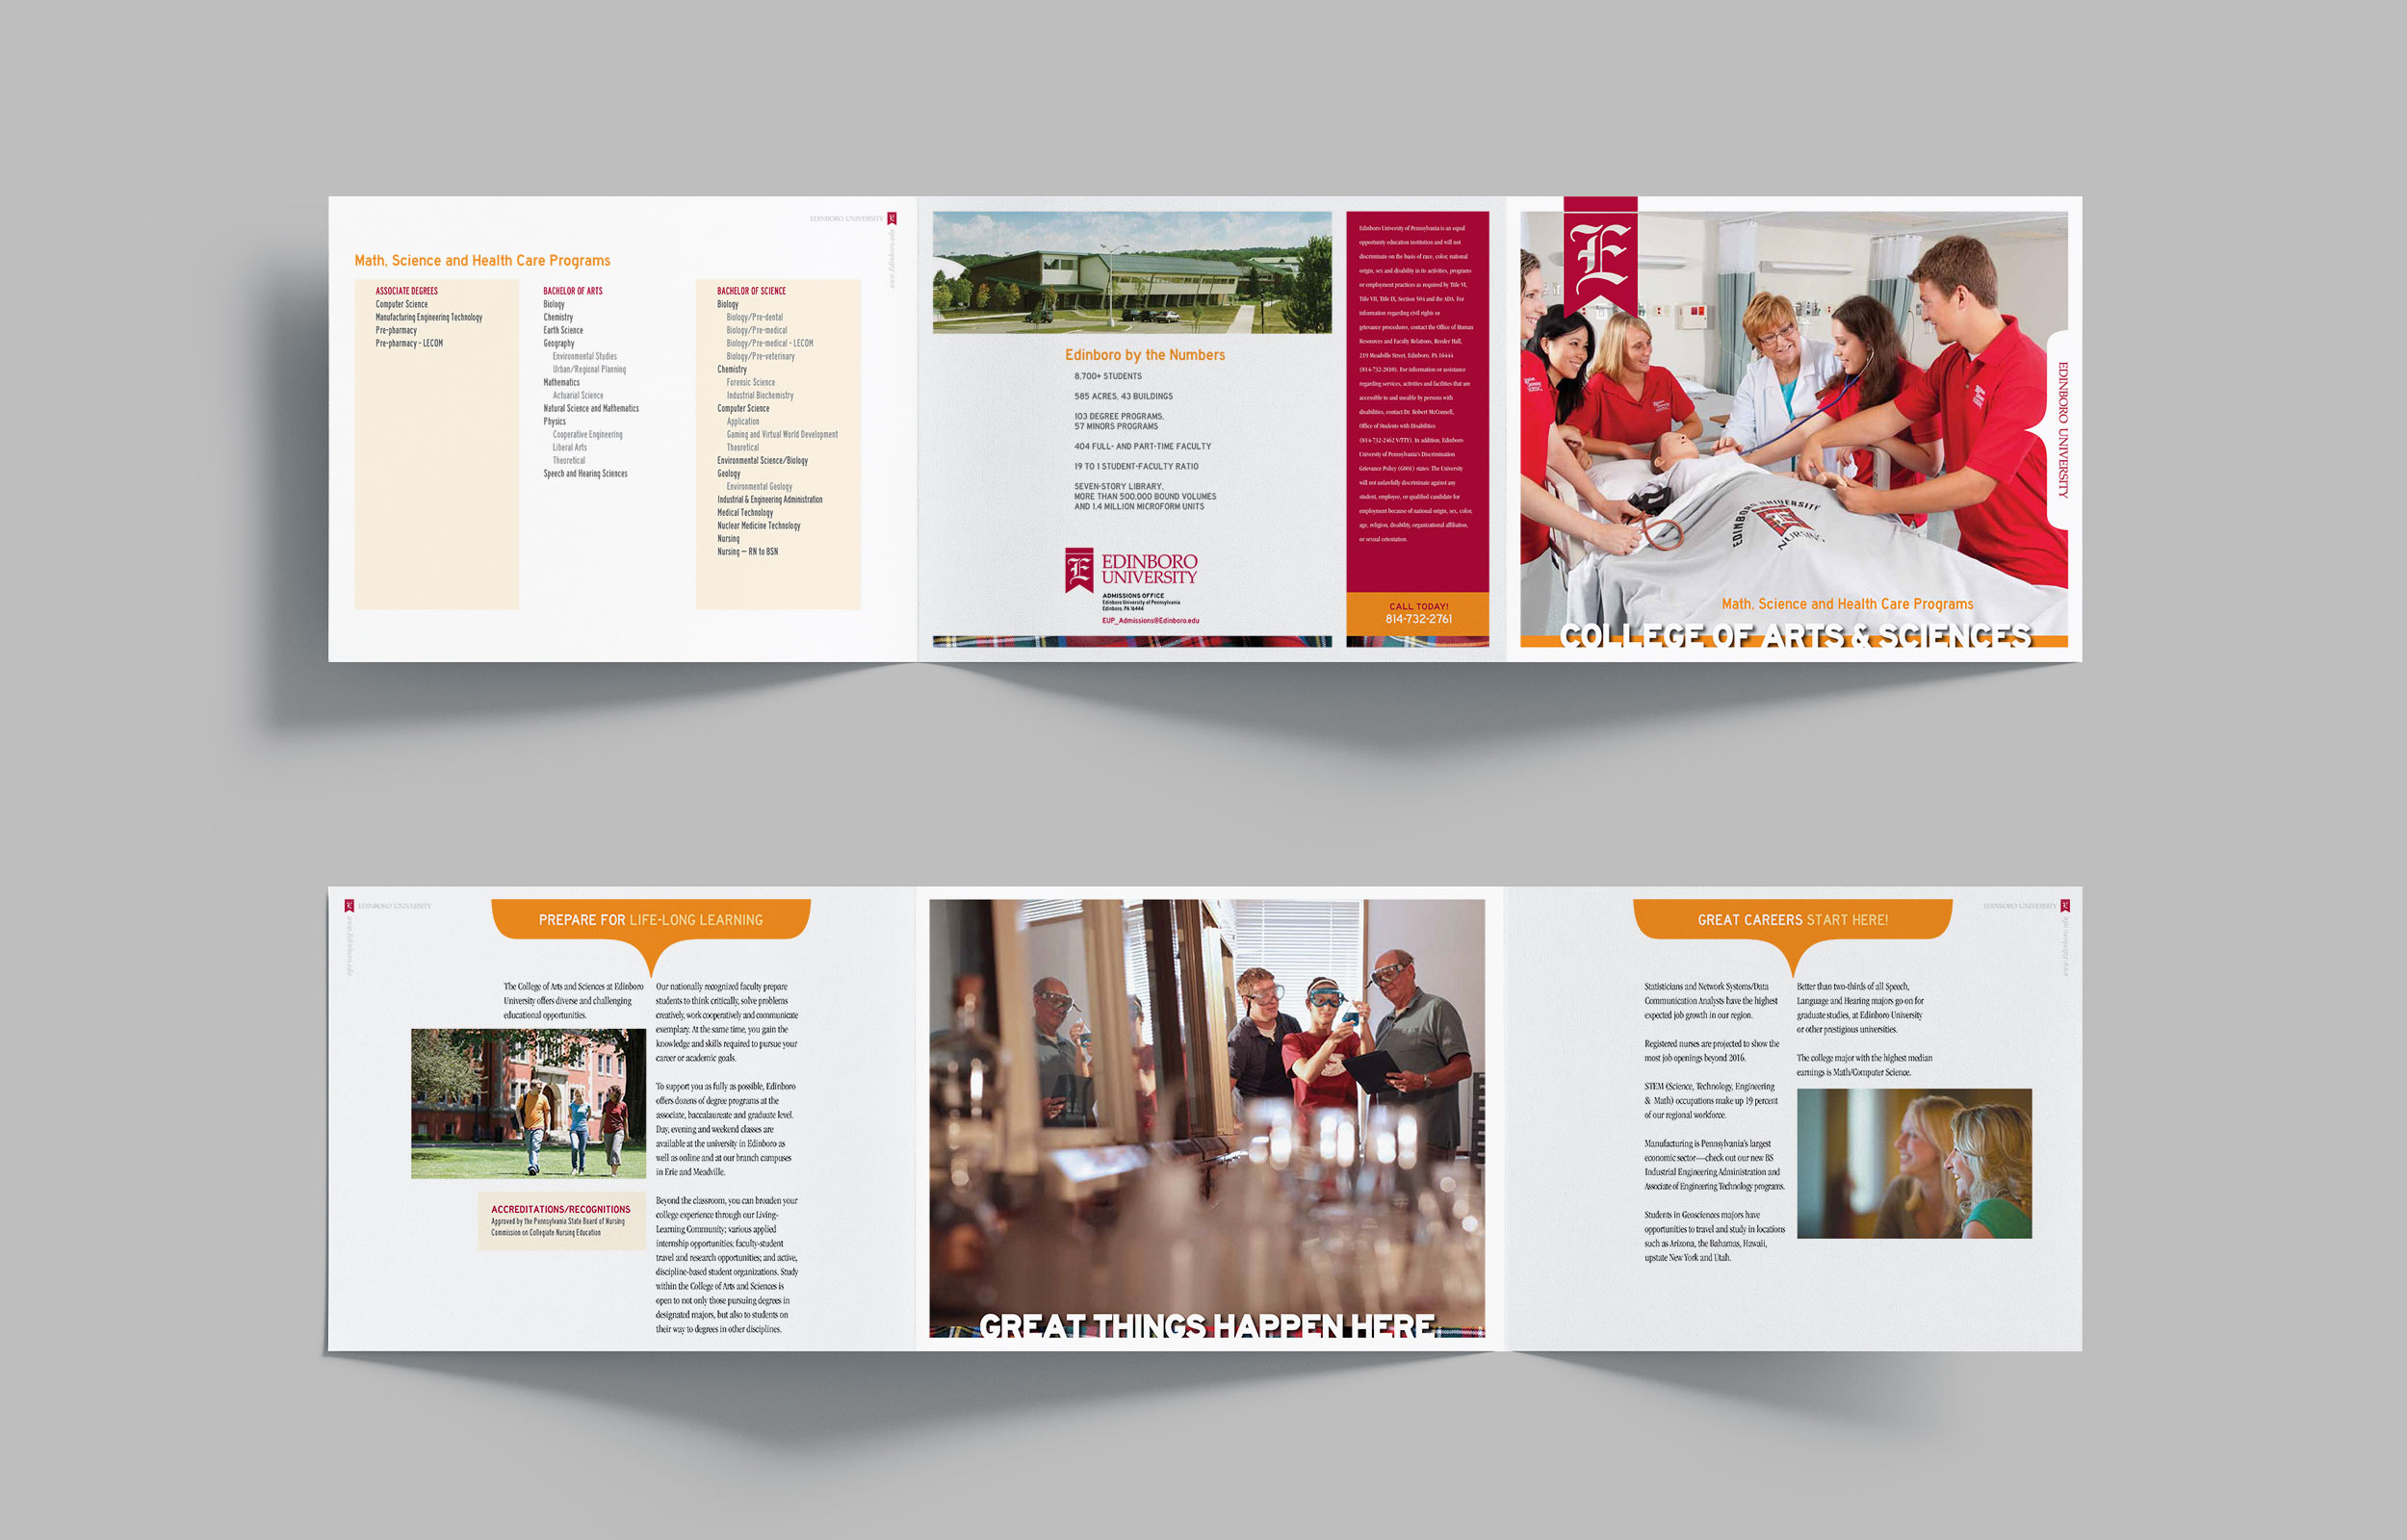 https://papaadvertising.com/wp-content/uploads/2015/04/EUP_dept-Brochure.jpg